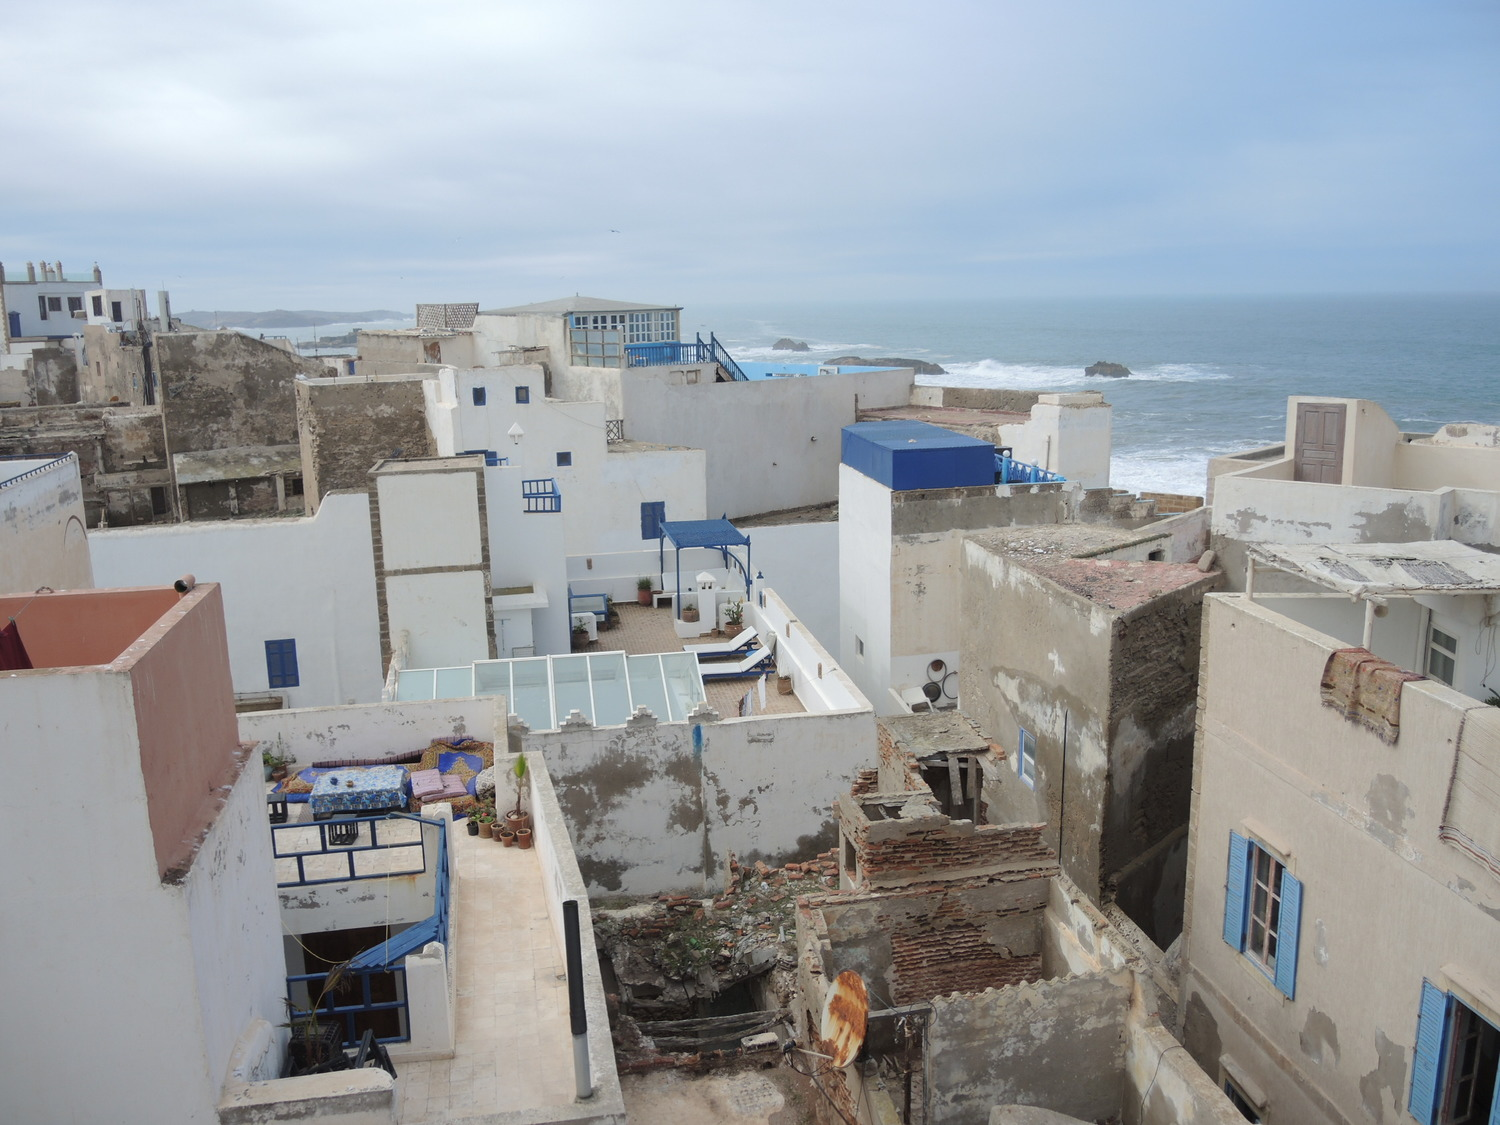 Streets of Taghazout